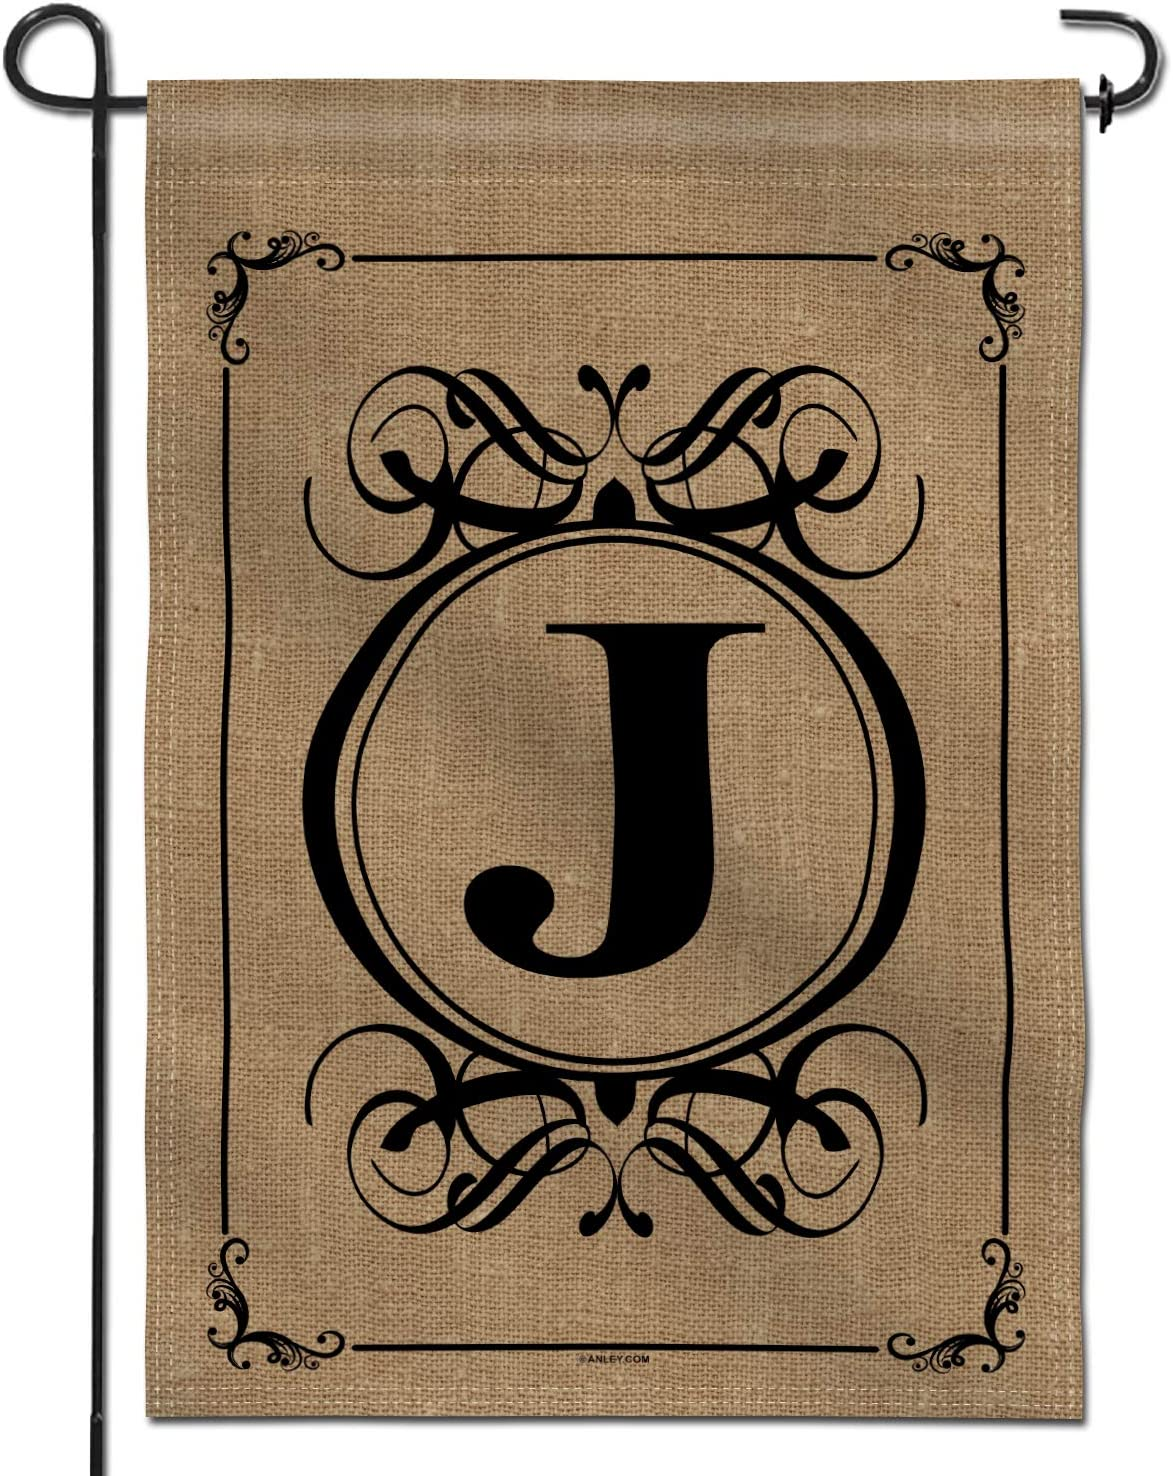 Anley Classic Monogram Letter J Garden Flag, Double Sided Family Last Name Initial Yard Flags - Personalized Welcome Home Decor - Weather Resistant & Double Stitched - 18 x 12.5 Inch